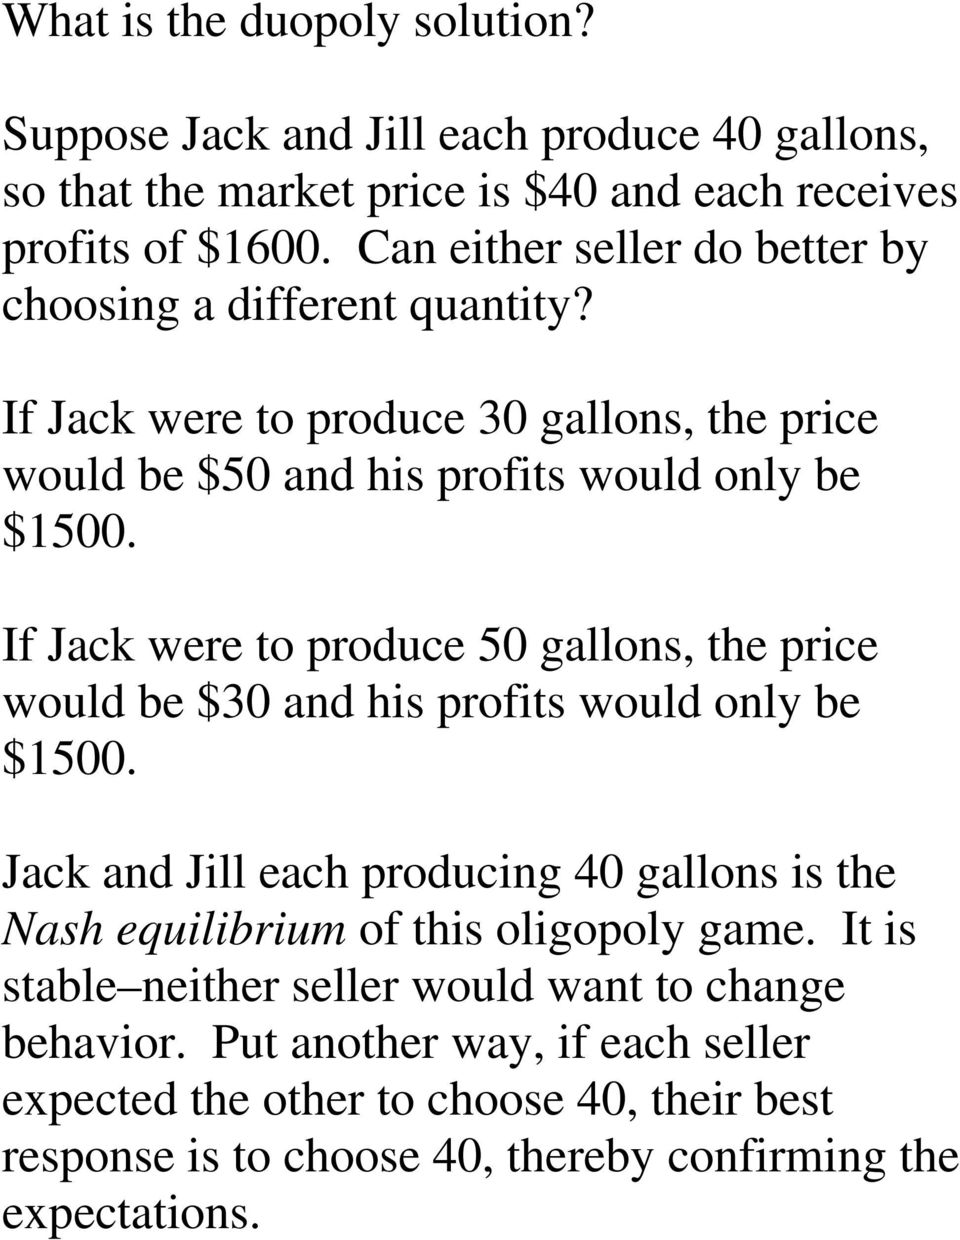 If Jack were to produce 50 gallons, the price would be $30 and his profits would only be $1500.